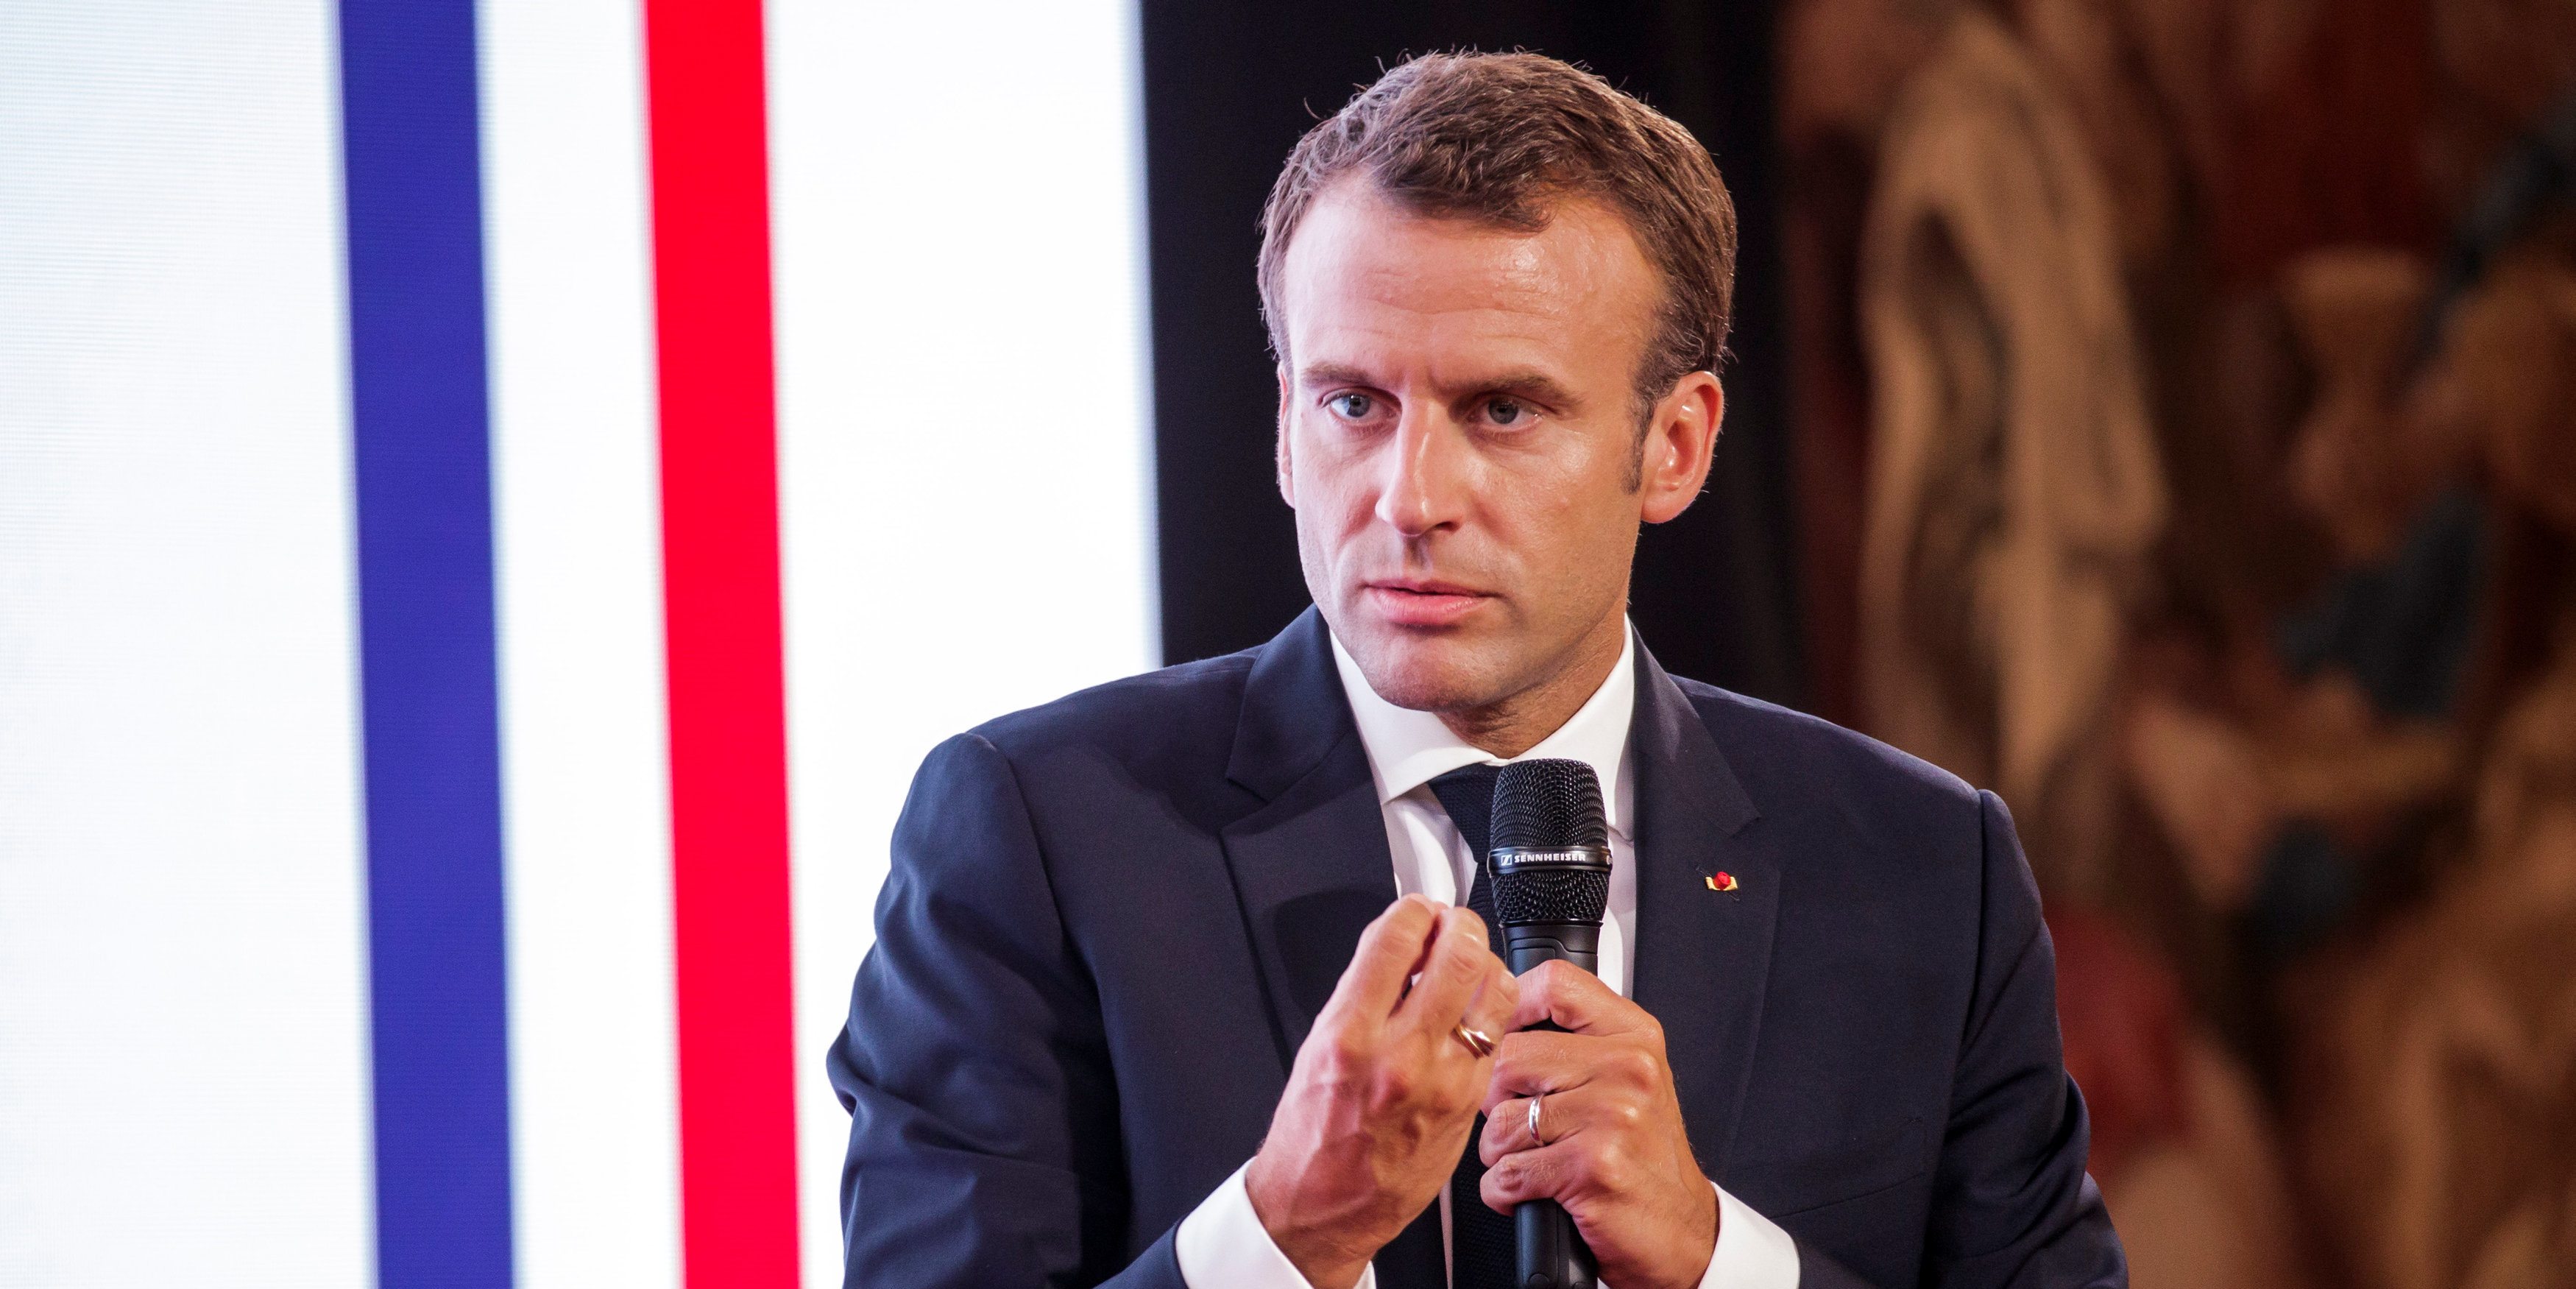 La Retraite Par Points De La Reforme Macron Miracle Ou Illusion